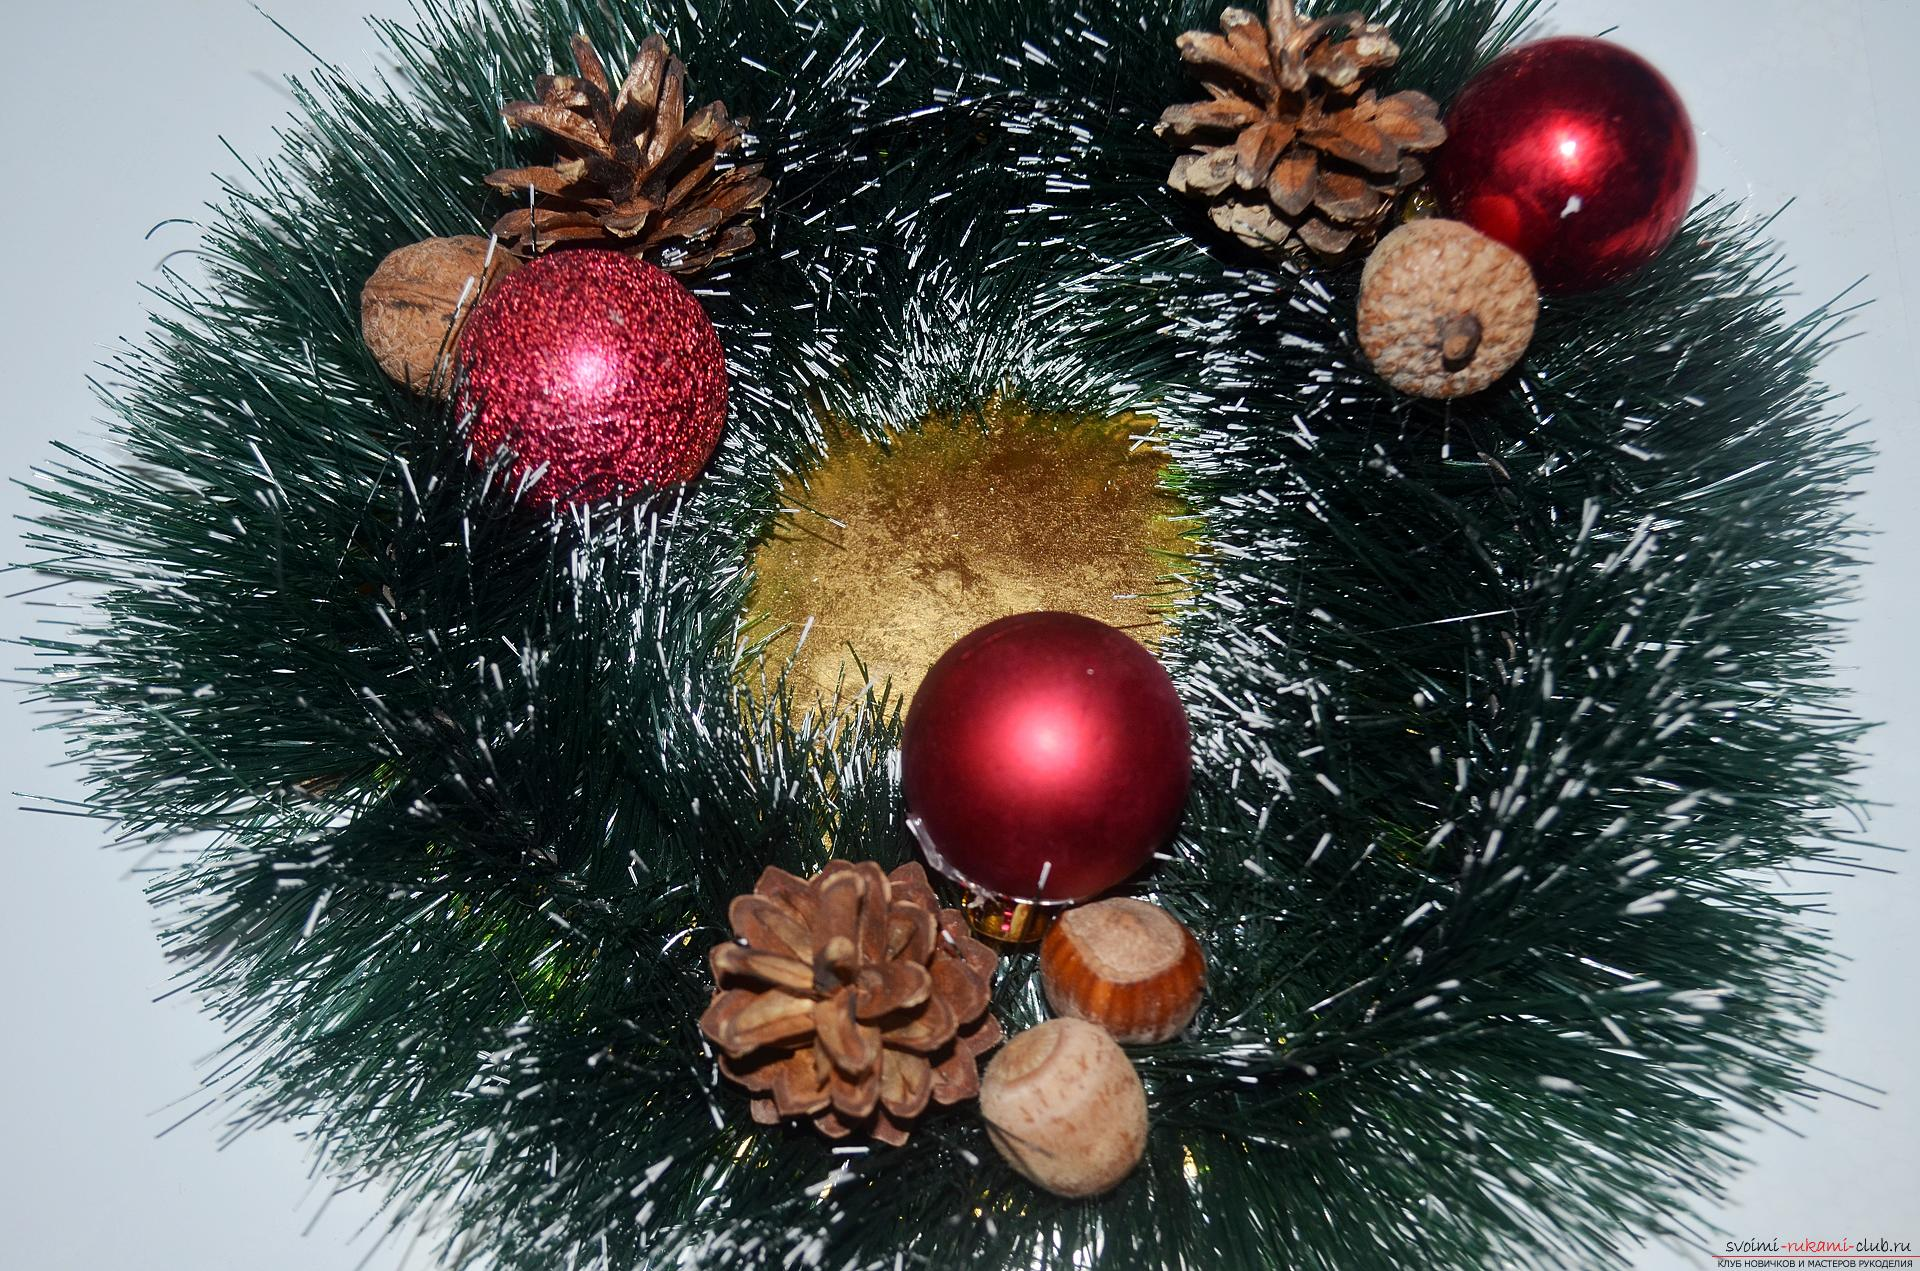 The master class will tell you how to make your own handiwork - a Christmas song with a candle. Photo №5